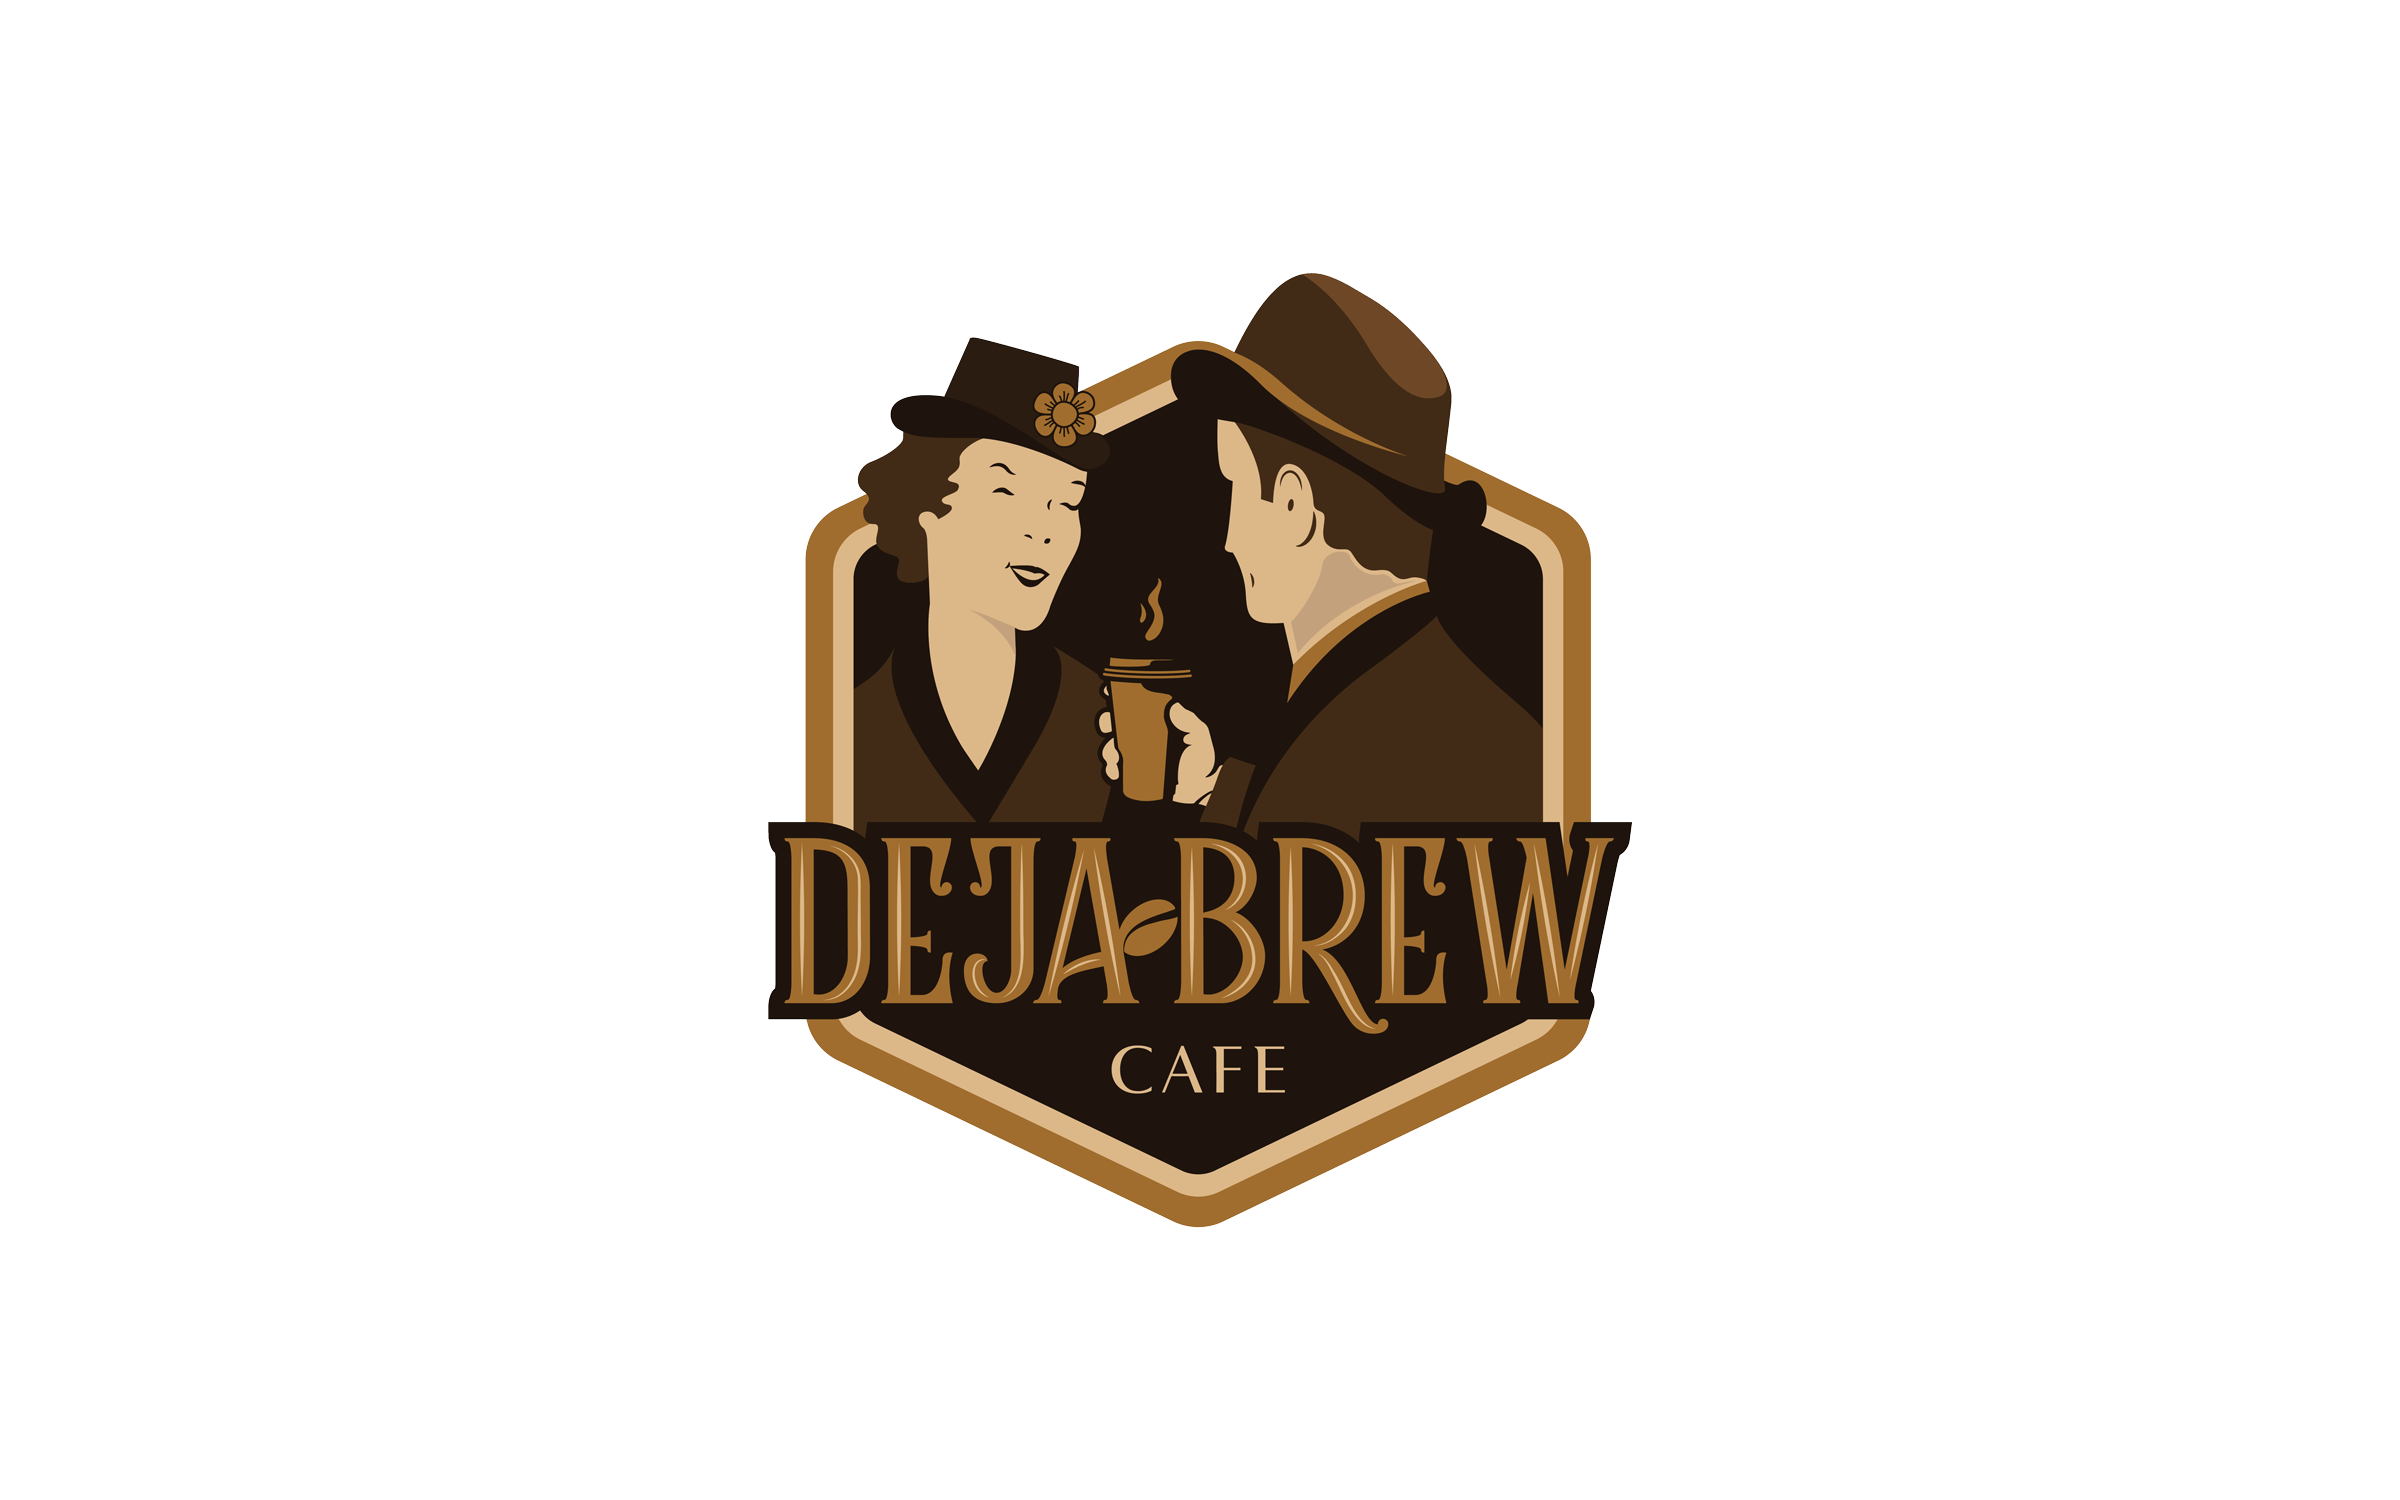 Deja Brew Cafe Logo Design